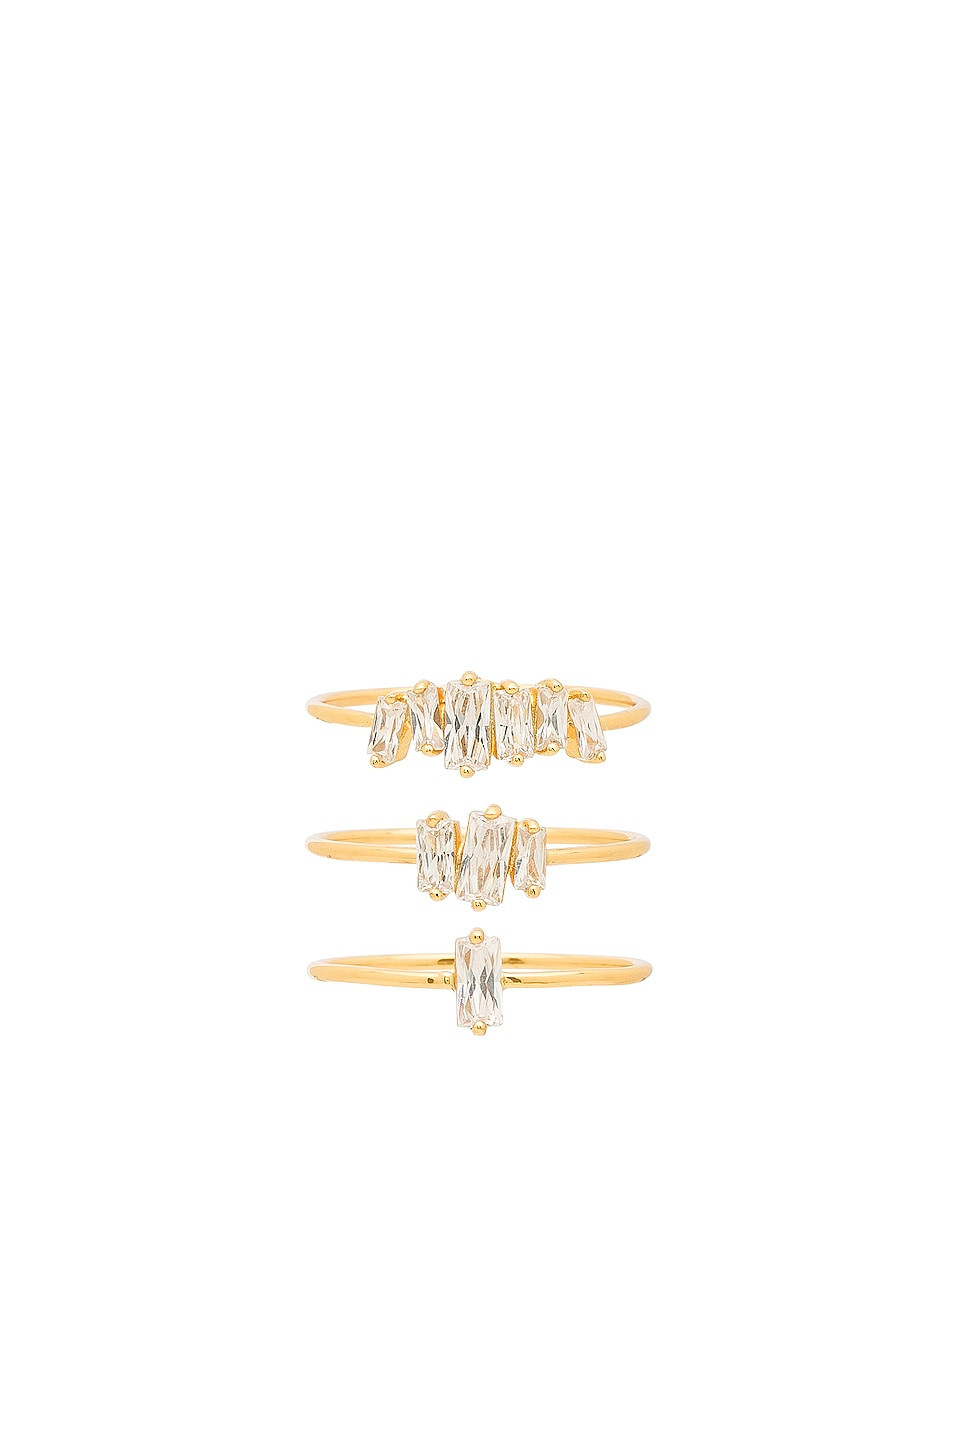 gorjana Amara Ring Set in White CZ & Gold